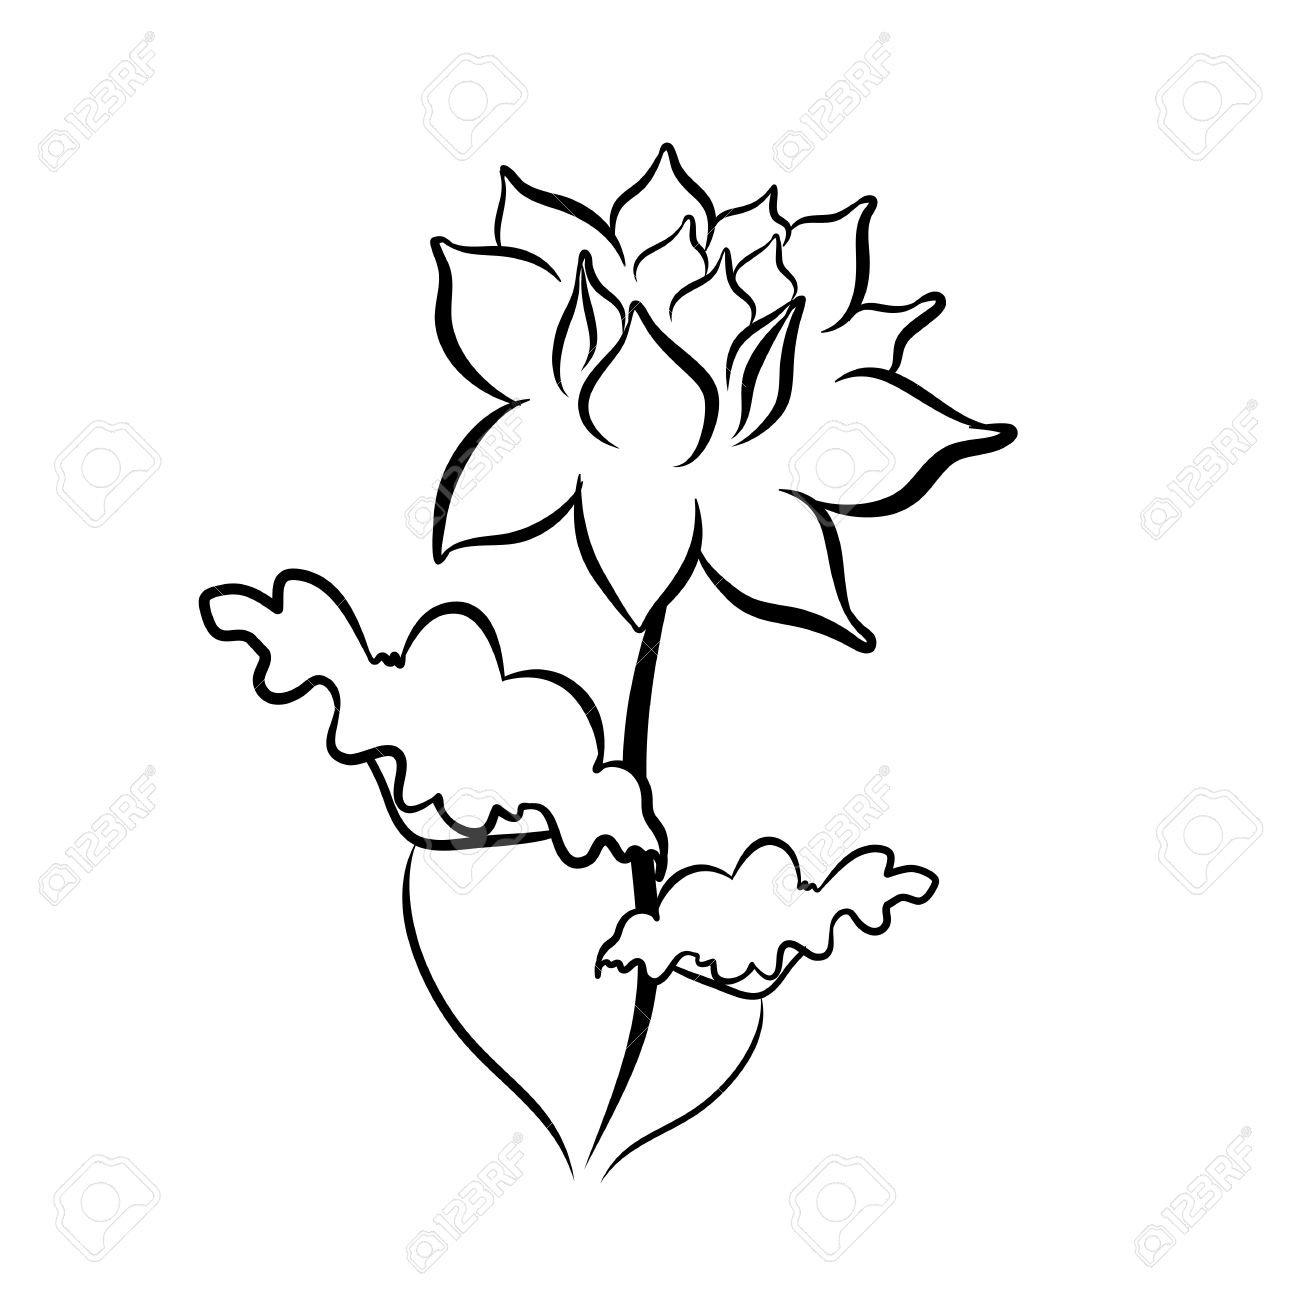 1300x1300 Sketch Line Drawing Of Lotus Flower Isolated Illustration